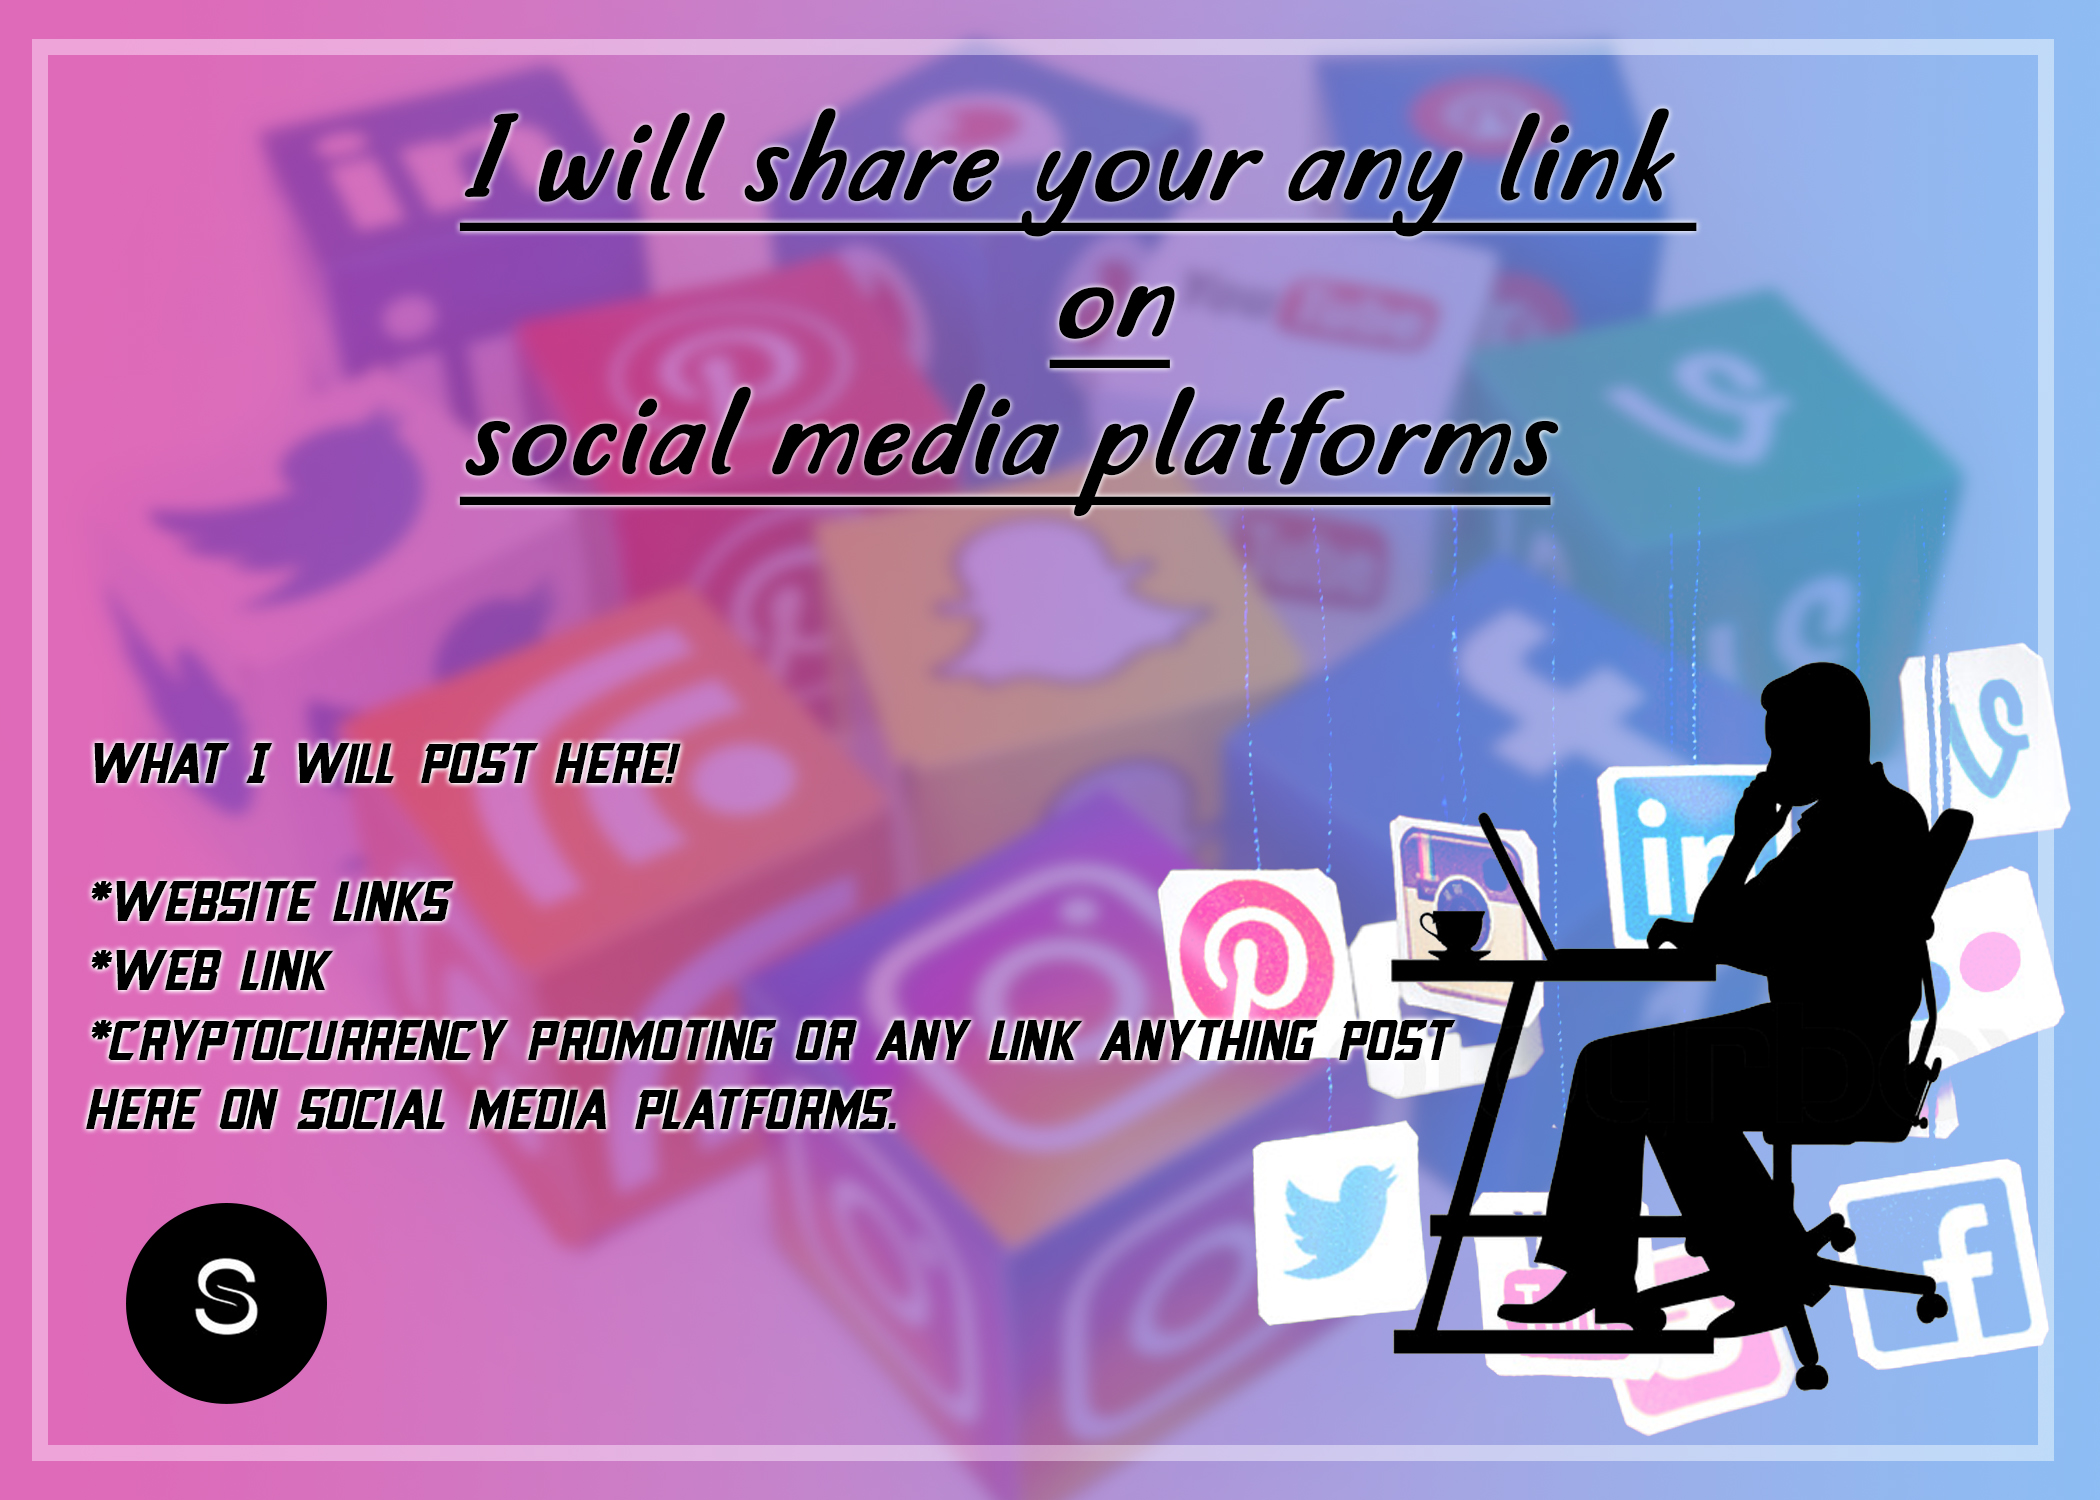 I will share your any link on social media platforms